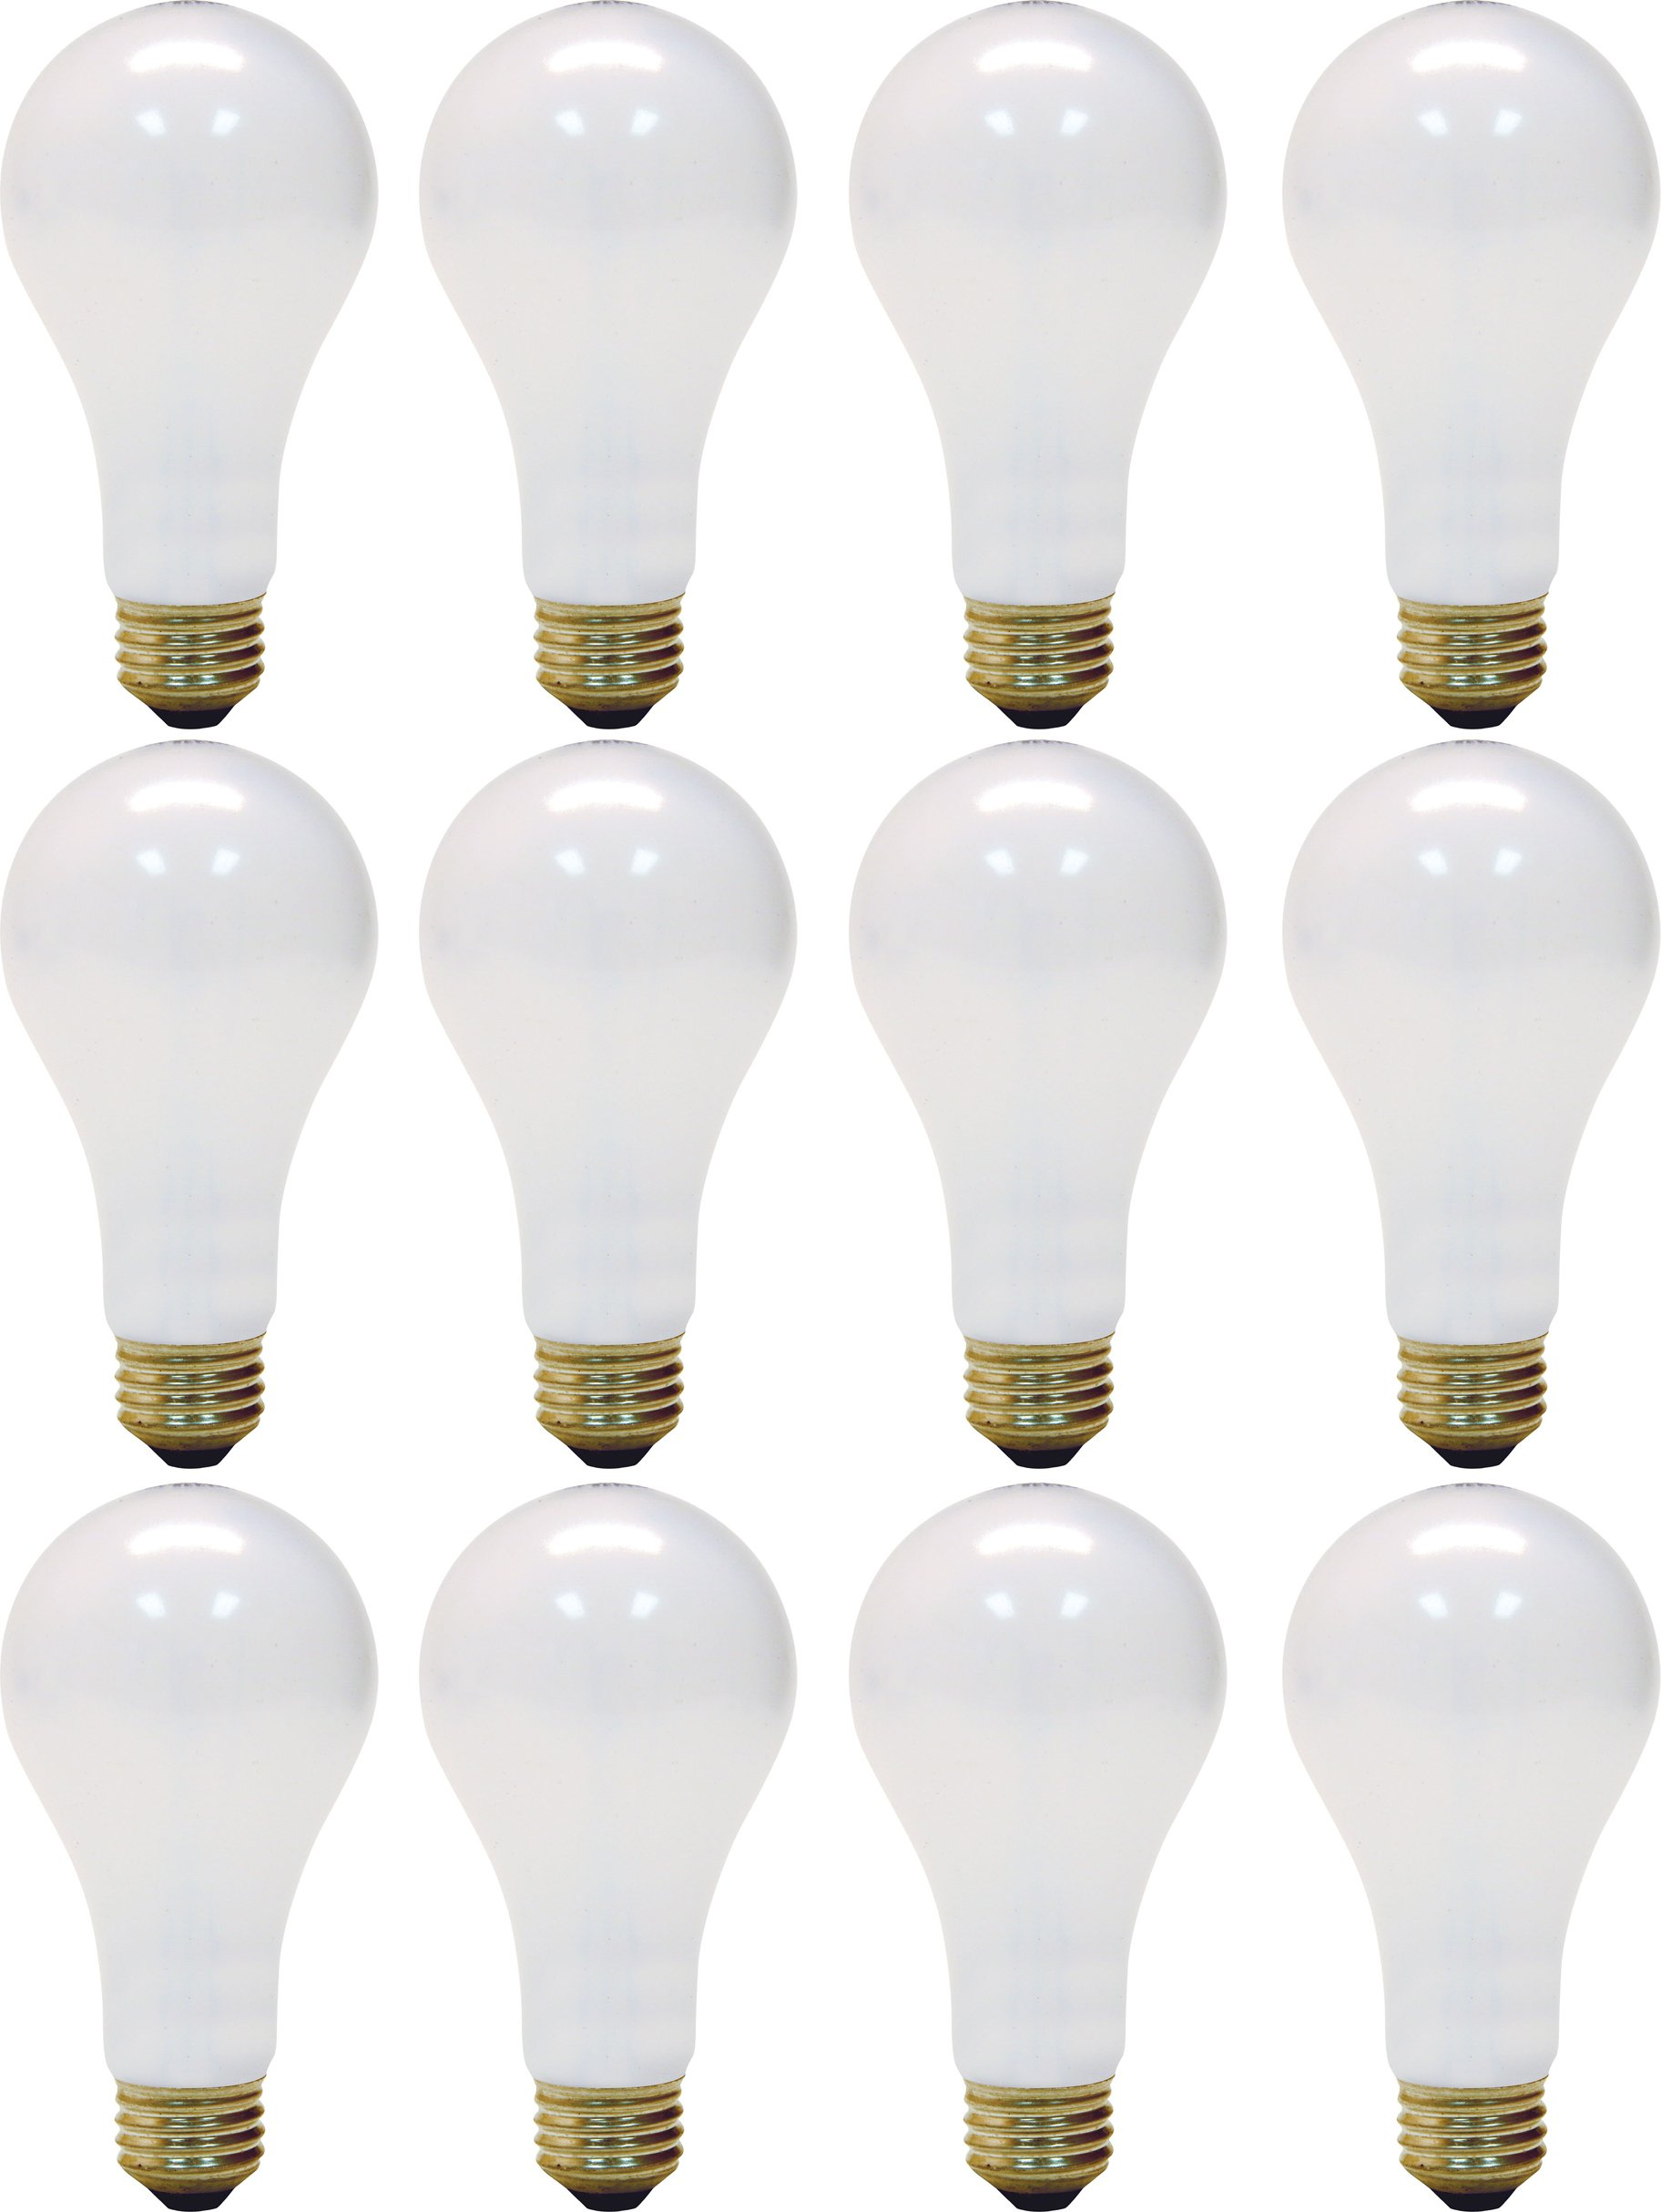 GE Lighting Soft White 3-way 97494 50/100/150-Watt, 2155-Lumen A21 Light Bulb with Medium Base, 12-Pack